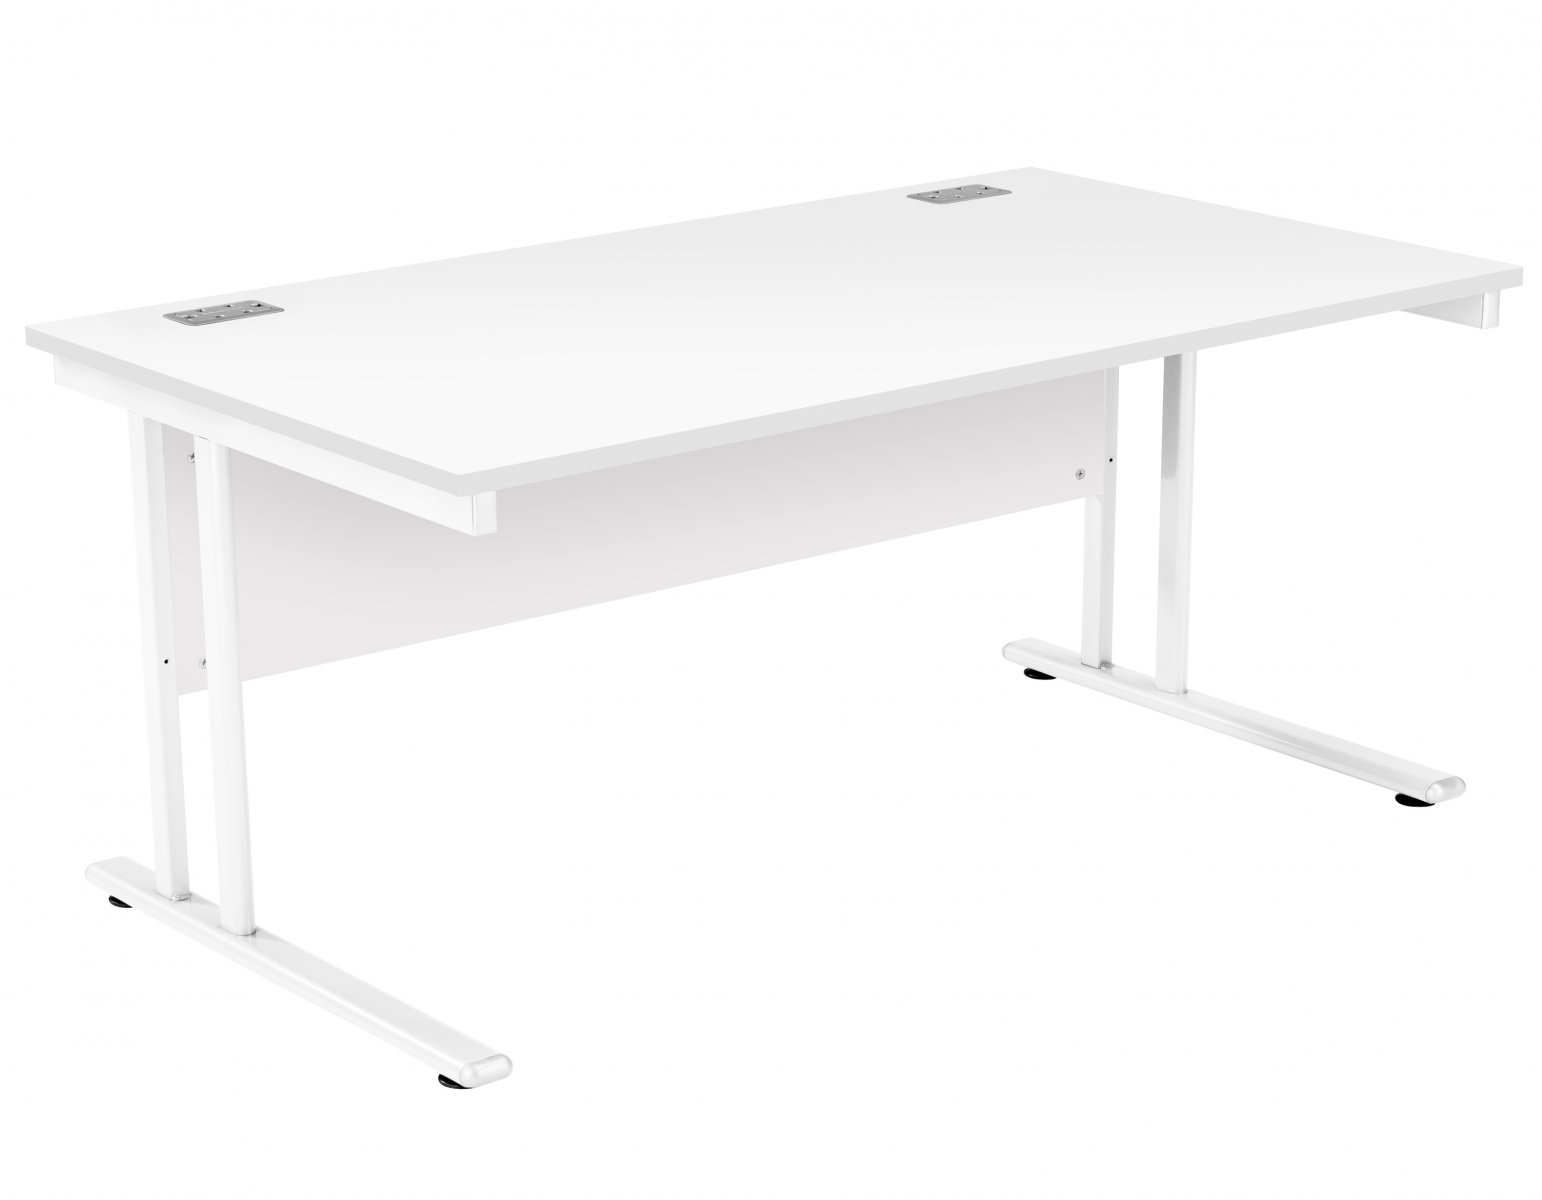 Fraction 2 Rectangular 160 Desk - White with White Frame